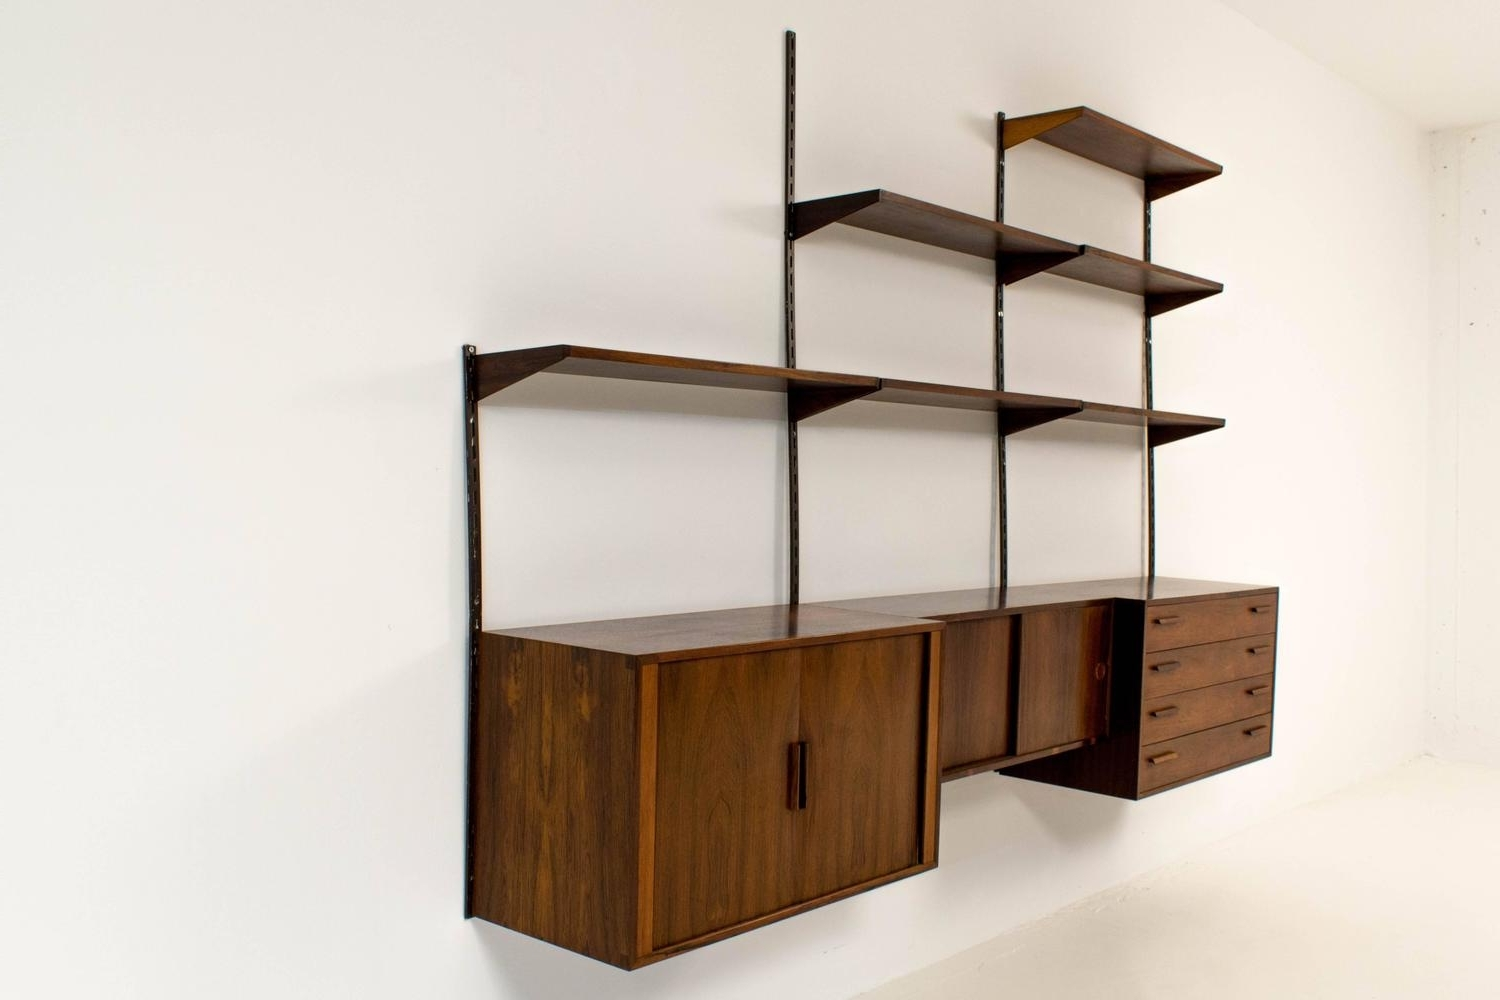 Famous Oak Wall Shelving Units With Regard To Andreas Wall Mounted Shelving Unit In Sand Oak And 9 Compartment (View 4 of 15)